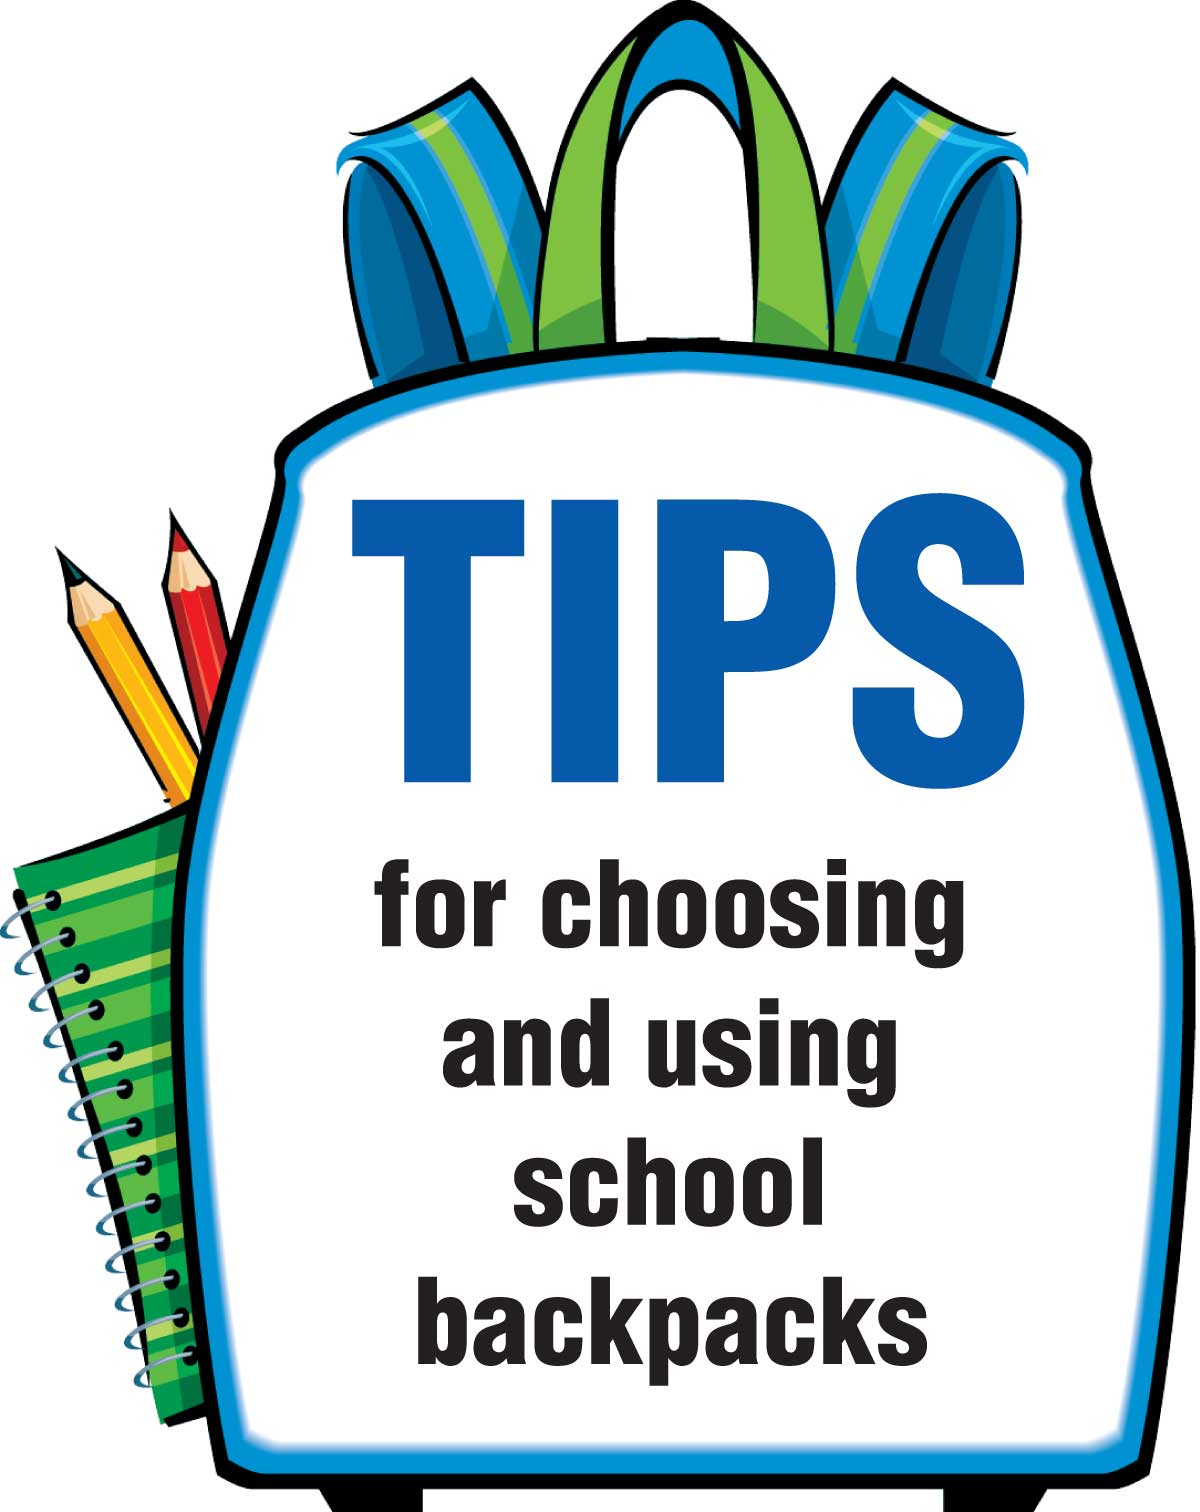 Tips for choosing and using school backpacks